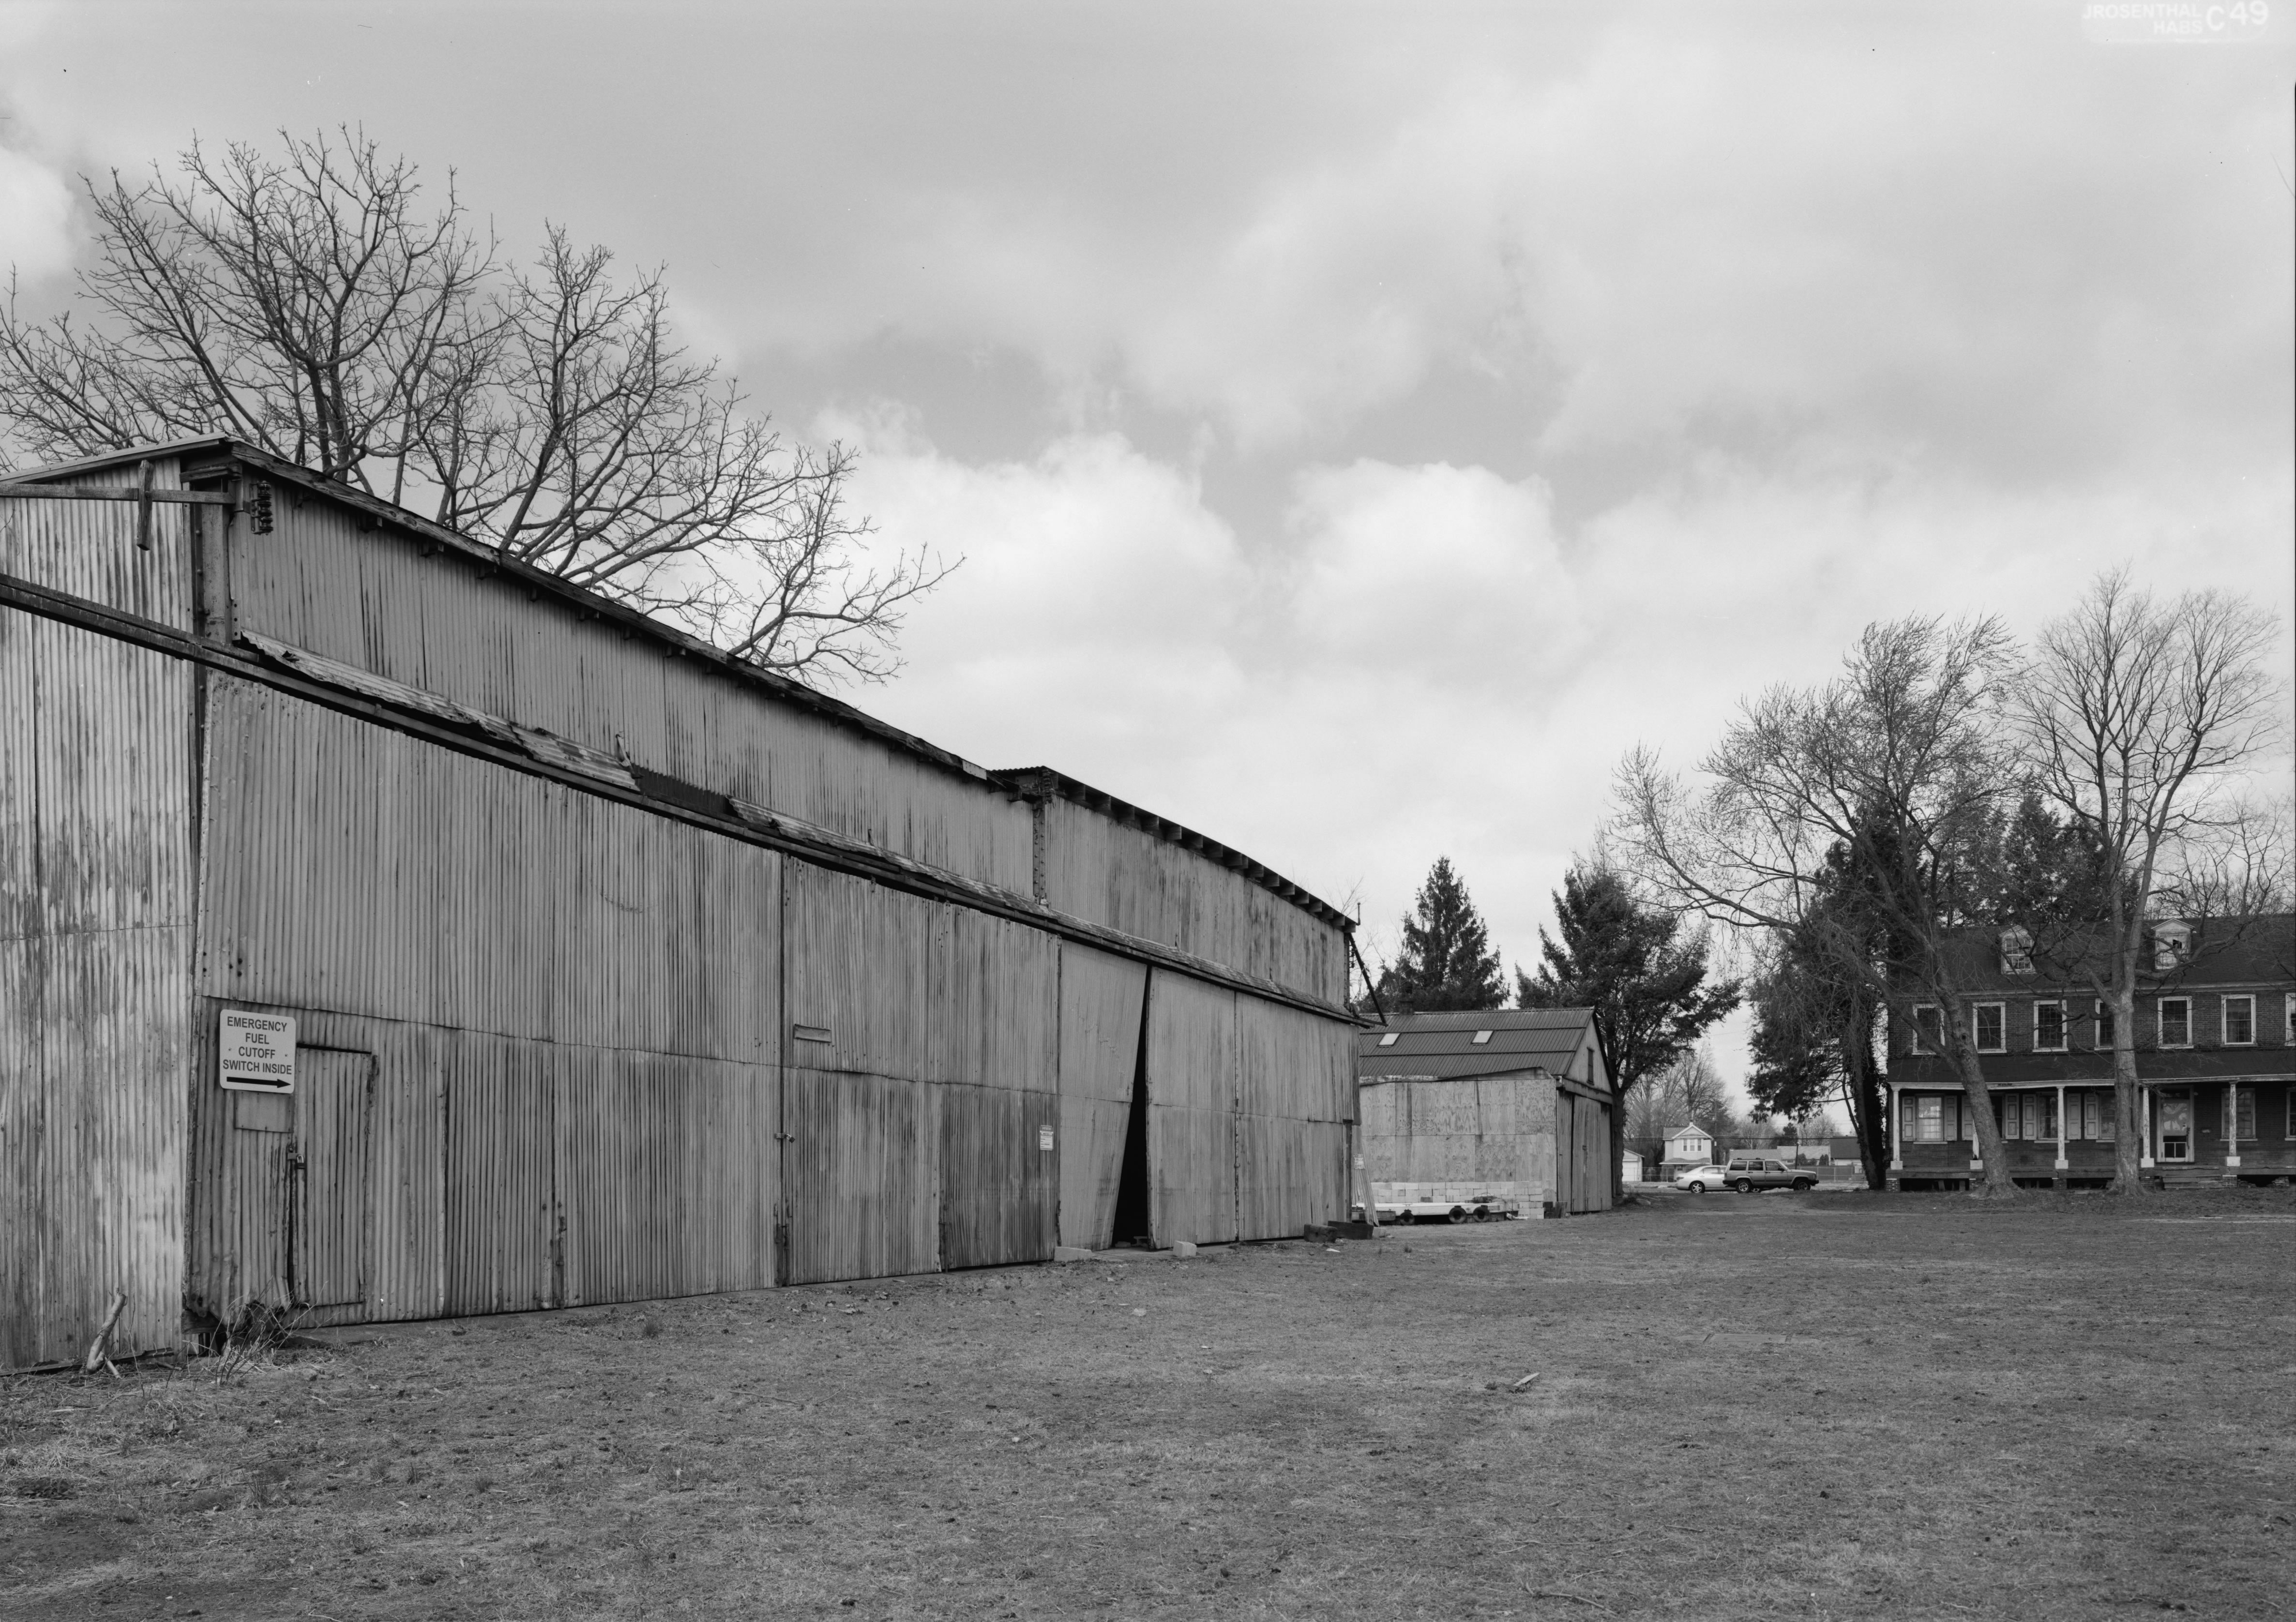 Marine Plane Hangars on the grounds of the Lazaretto